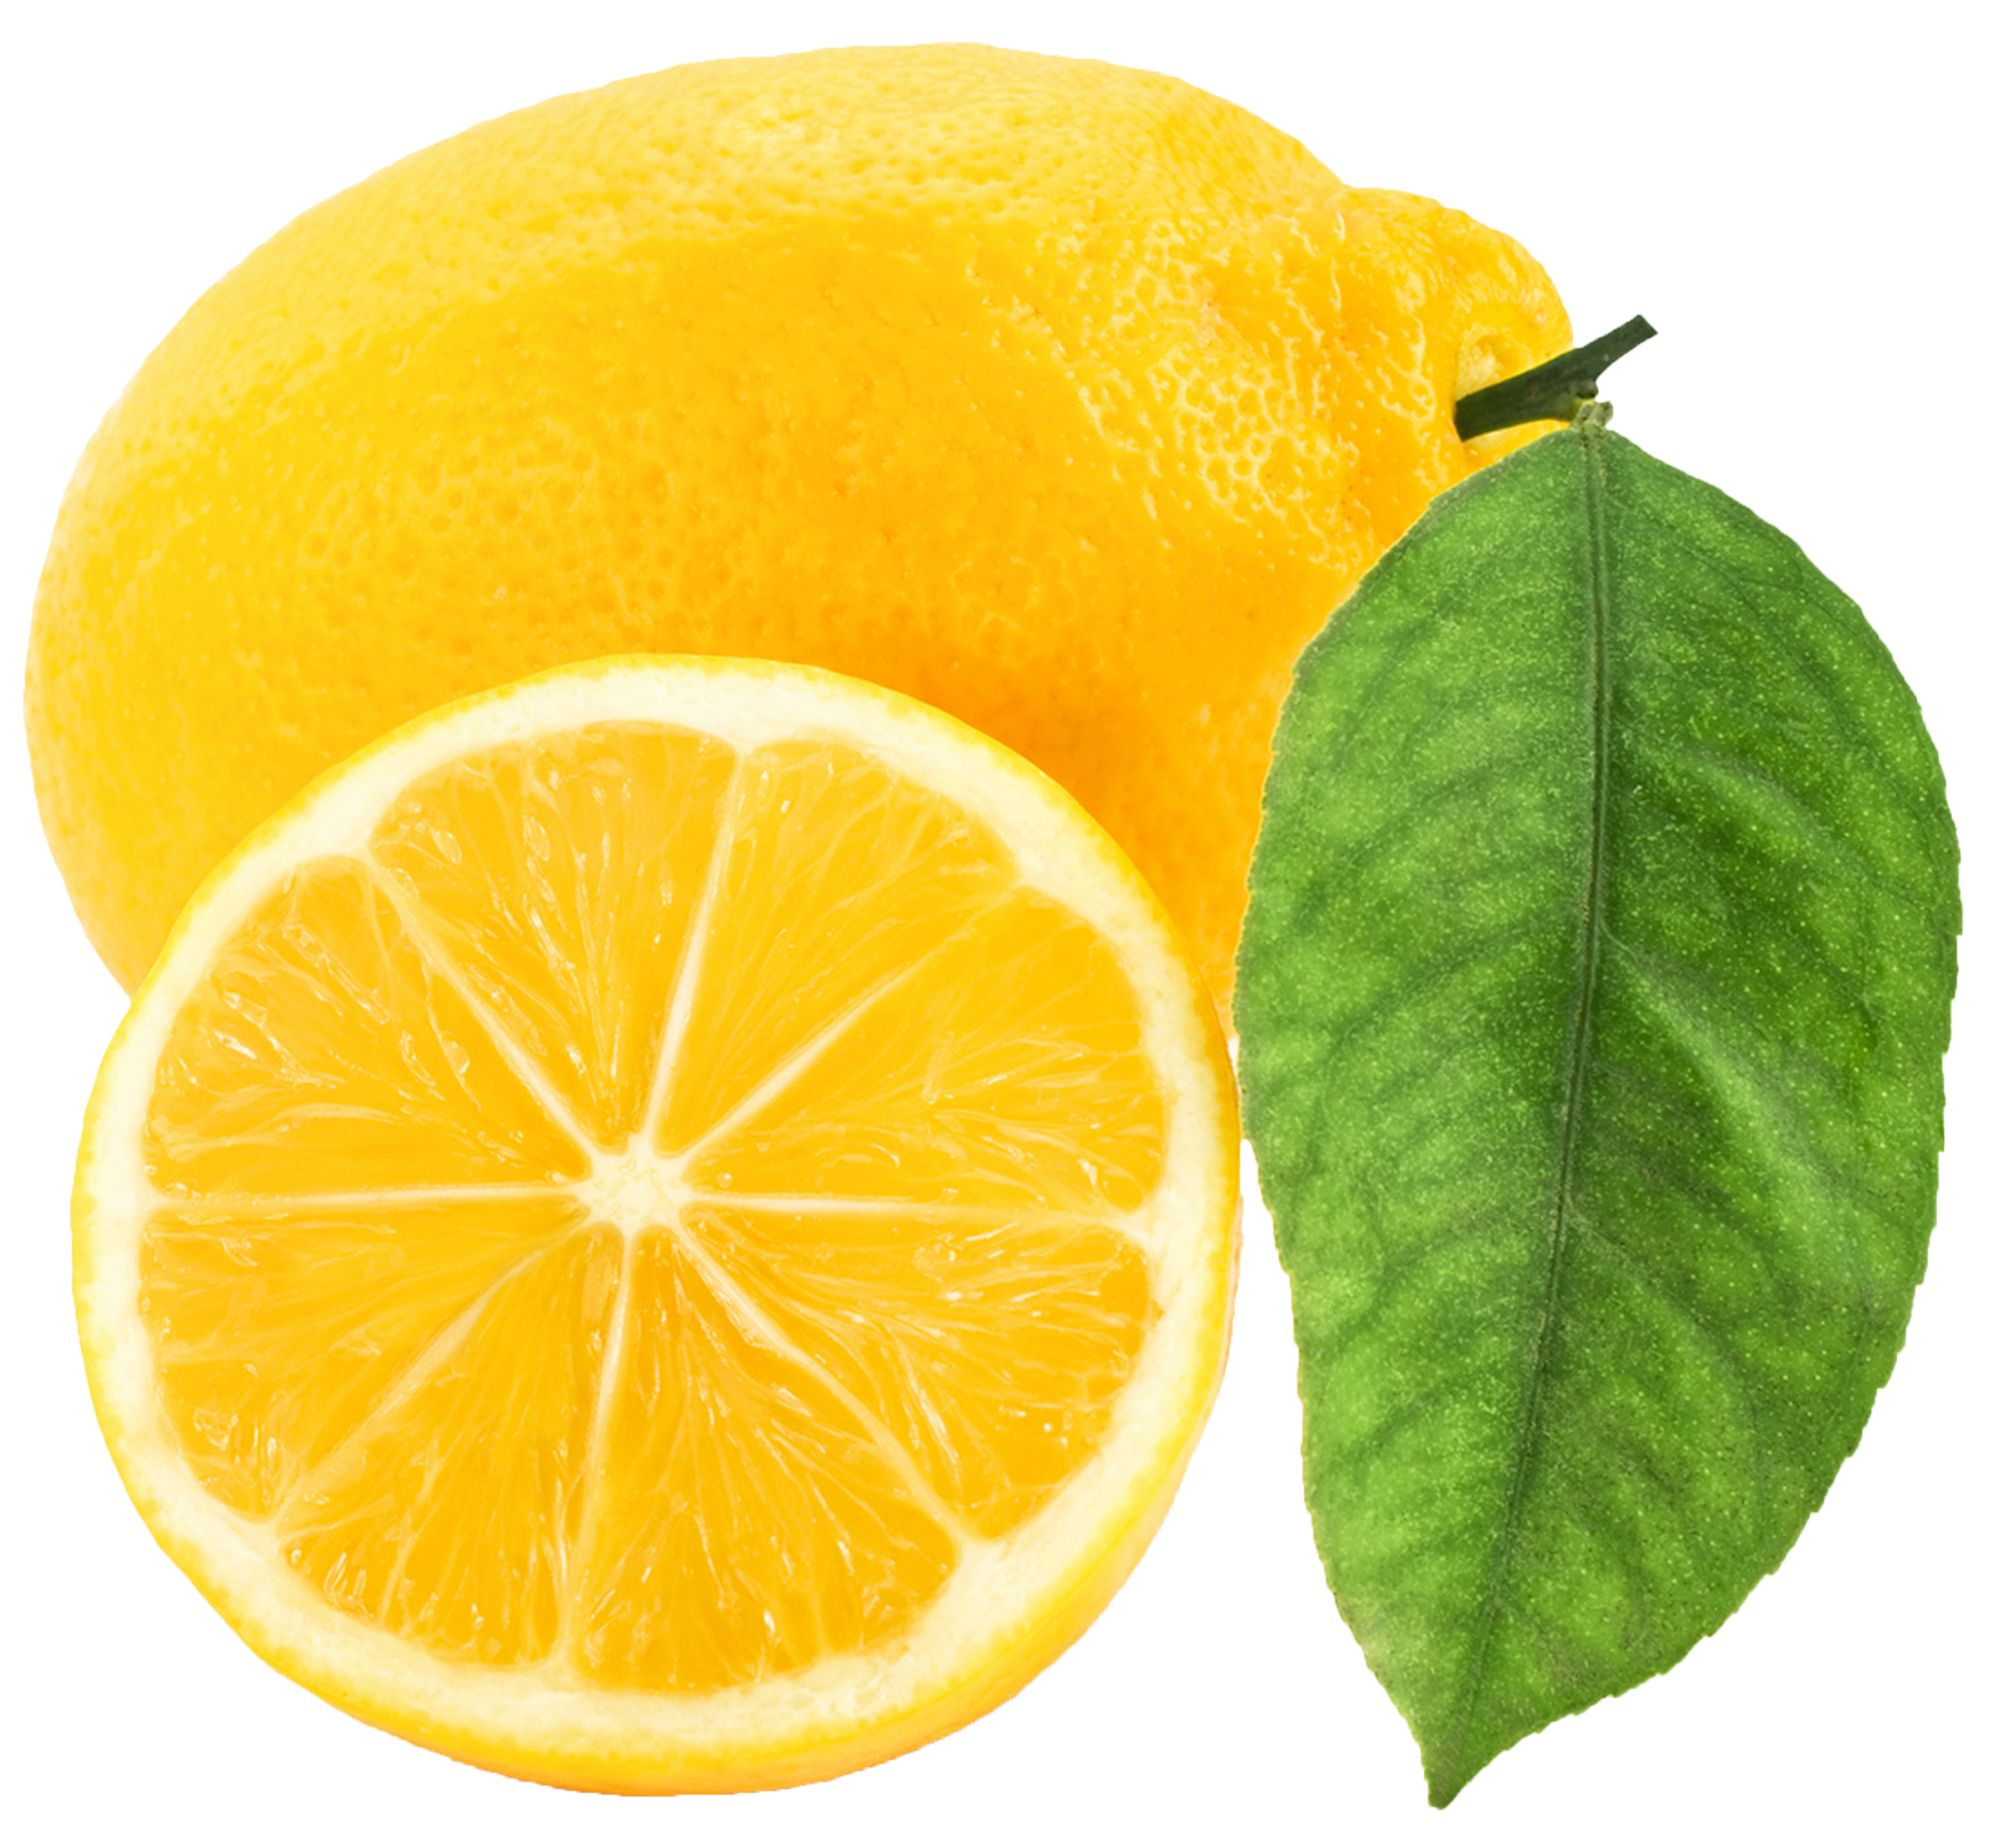 Lemon clipart bitter food. Image from http gallery